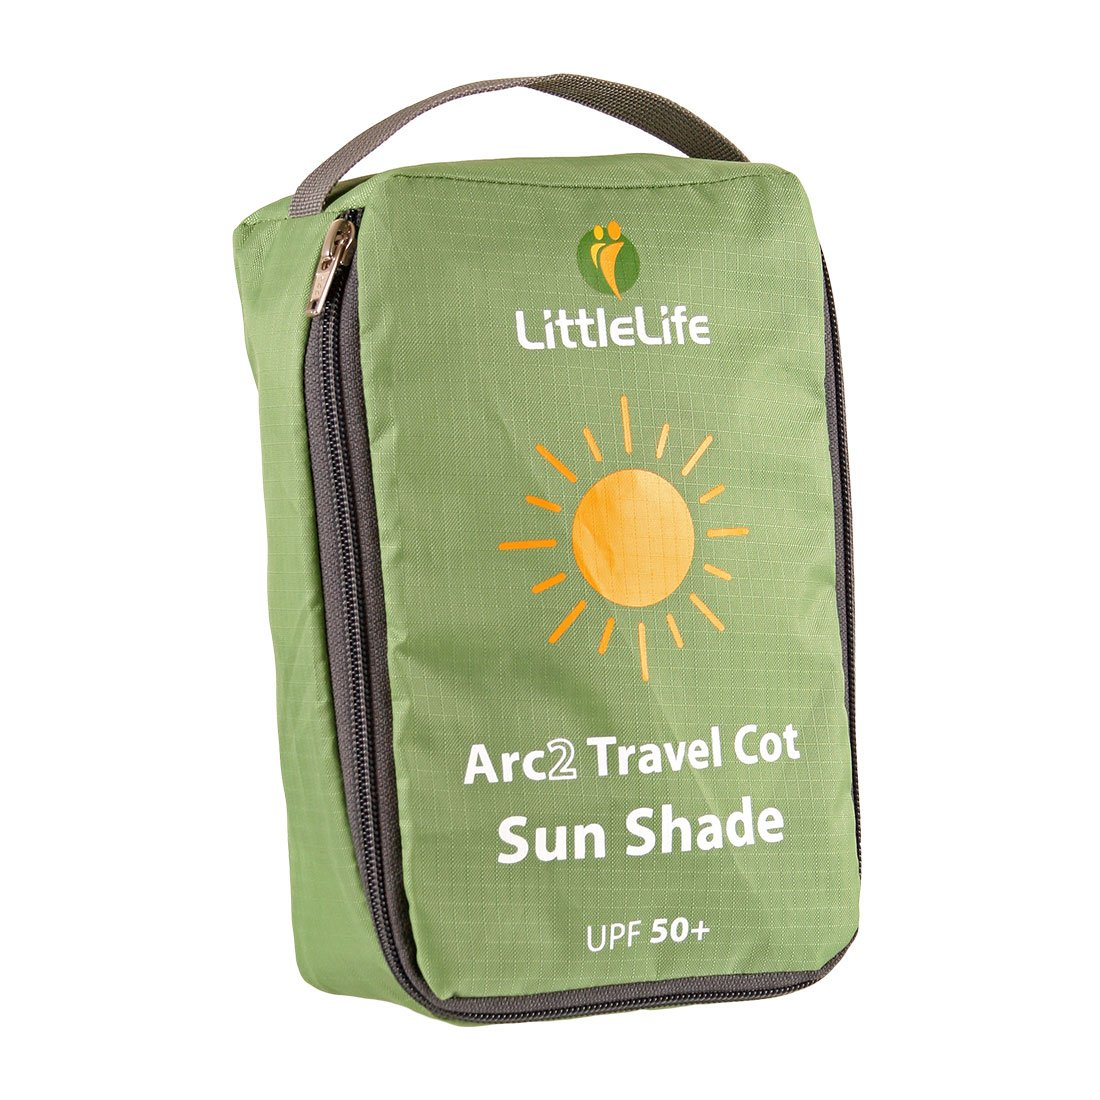 Sun Shade For Travel Cot Travel Cot Accessories